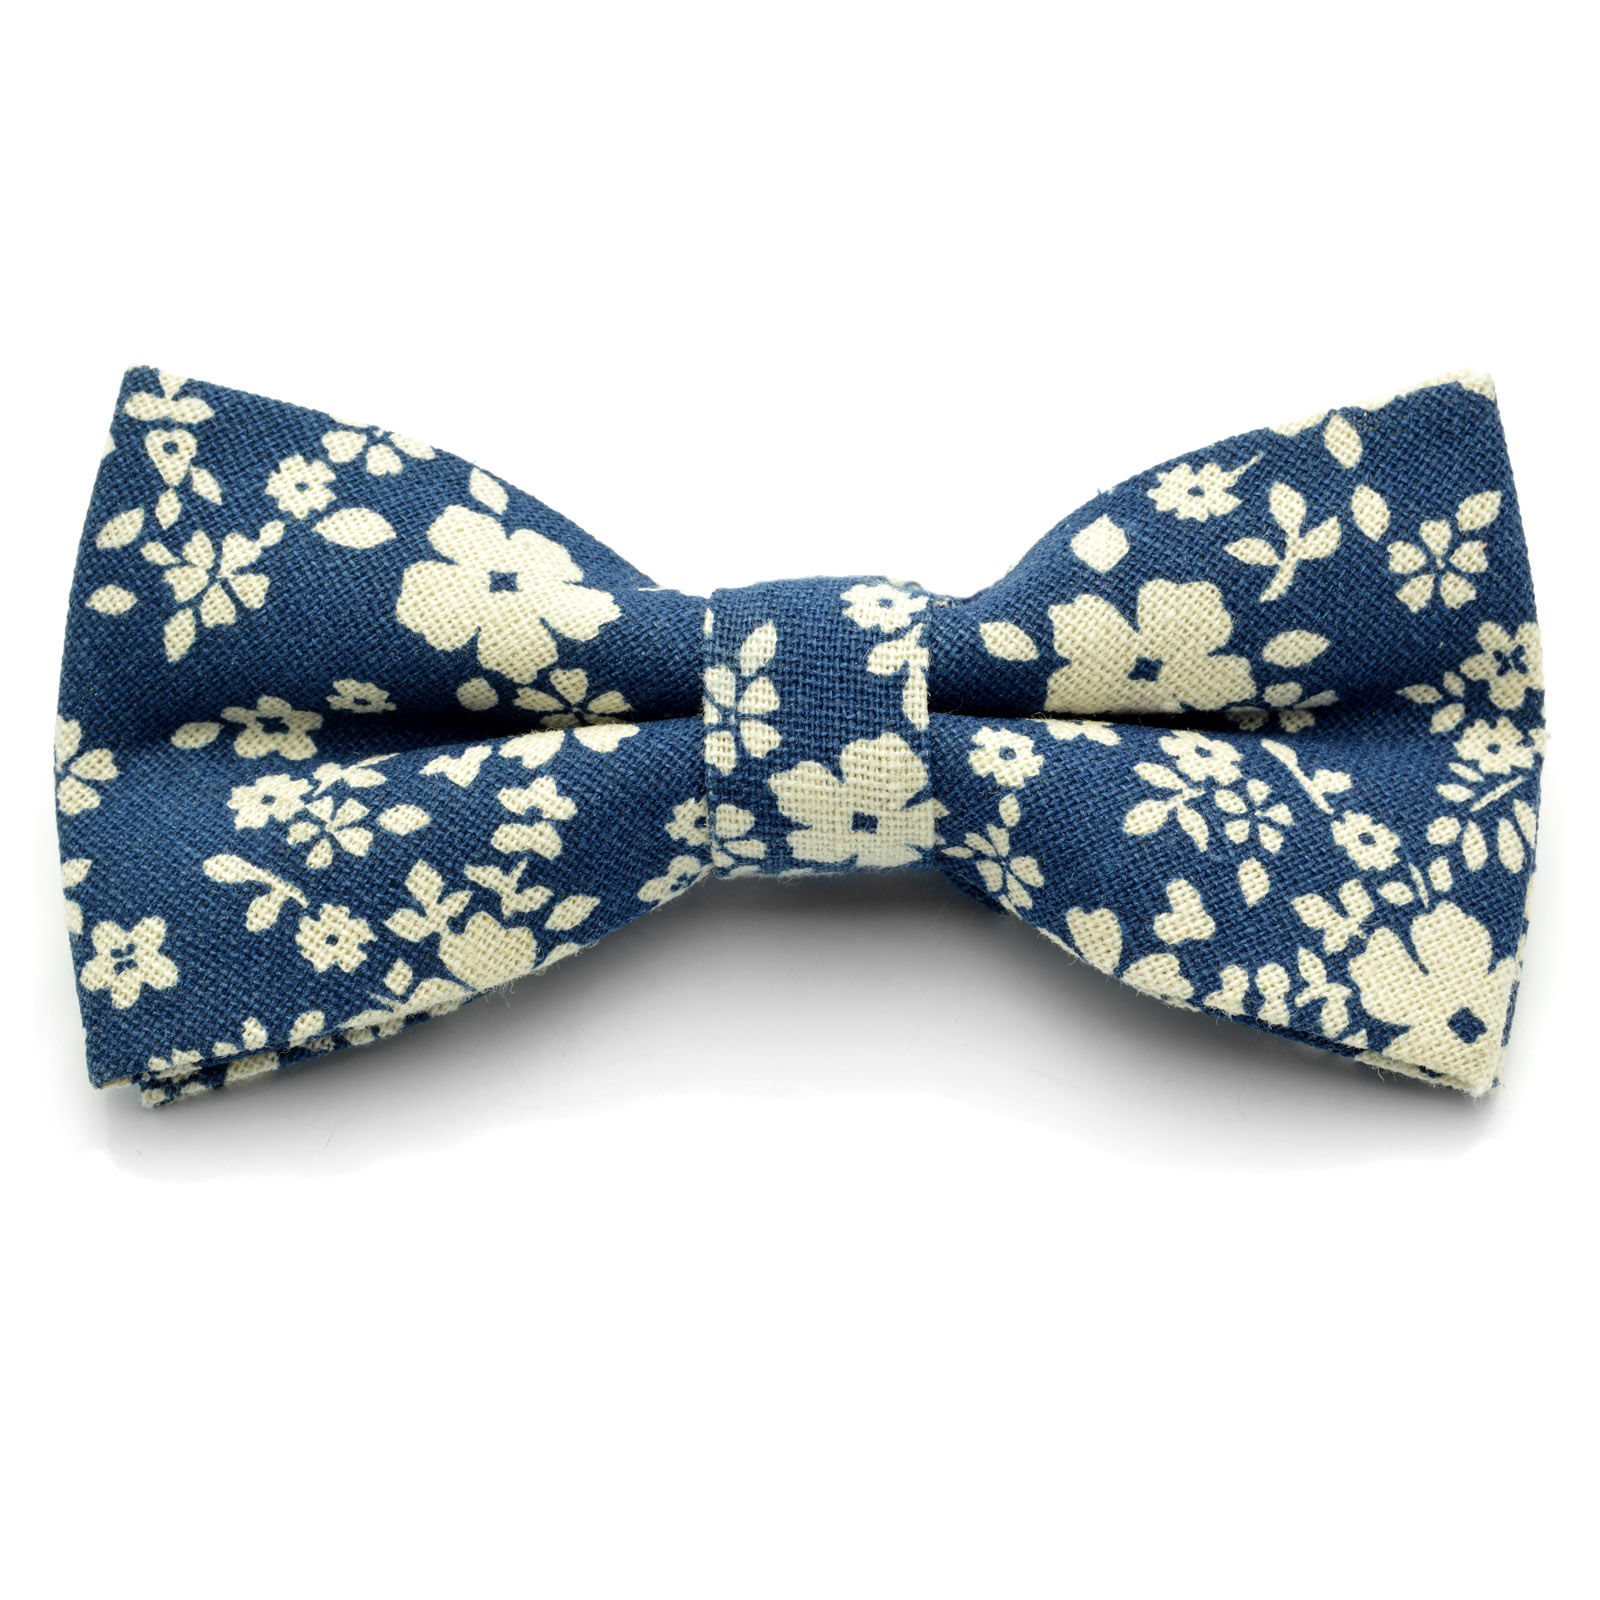 e6b6220115c2 Blue / White Floral Bow Tie | Tailor Toki | In stock!